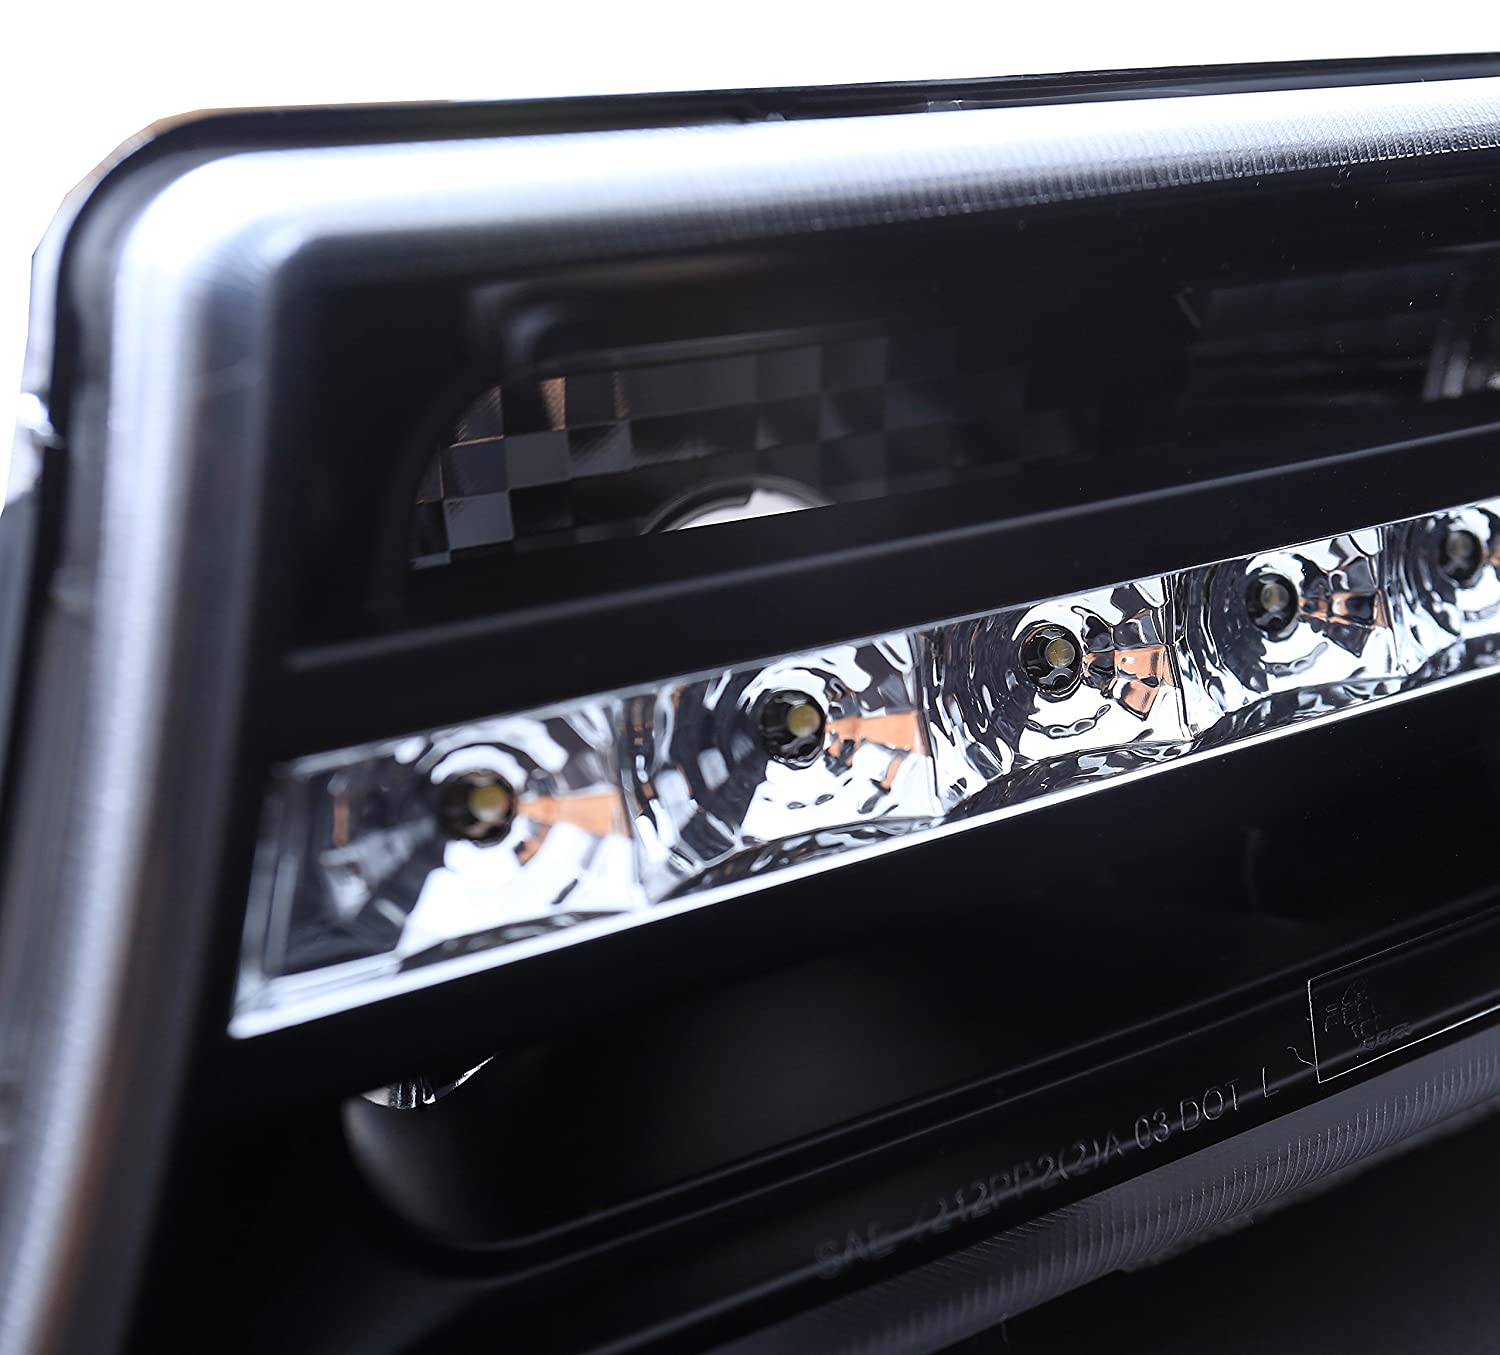 Sppc Black Parking Lights For Chevy Silverado Pair 1997 Cargo Light Wiring Bumper Led Driver Left And Passenger Right Side Replacement Automotive